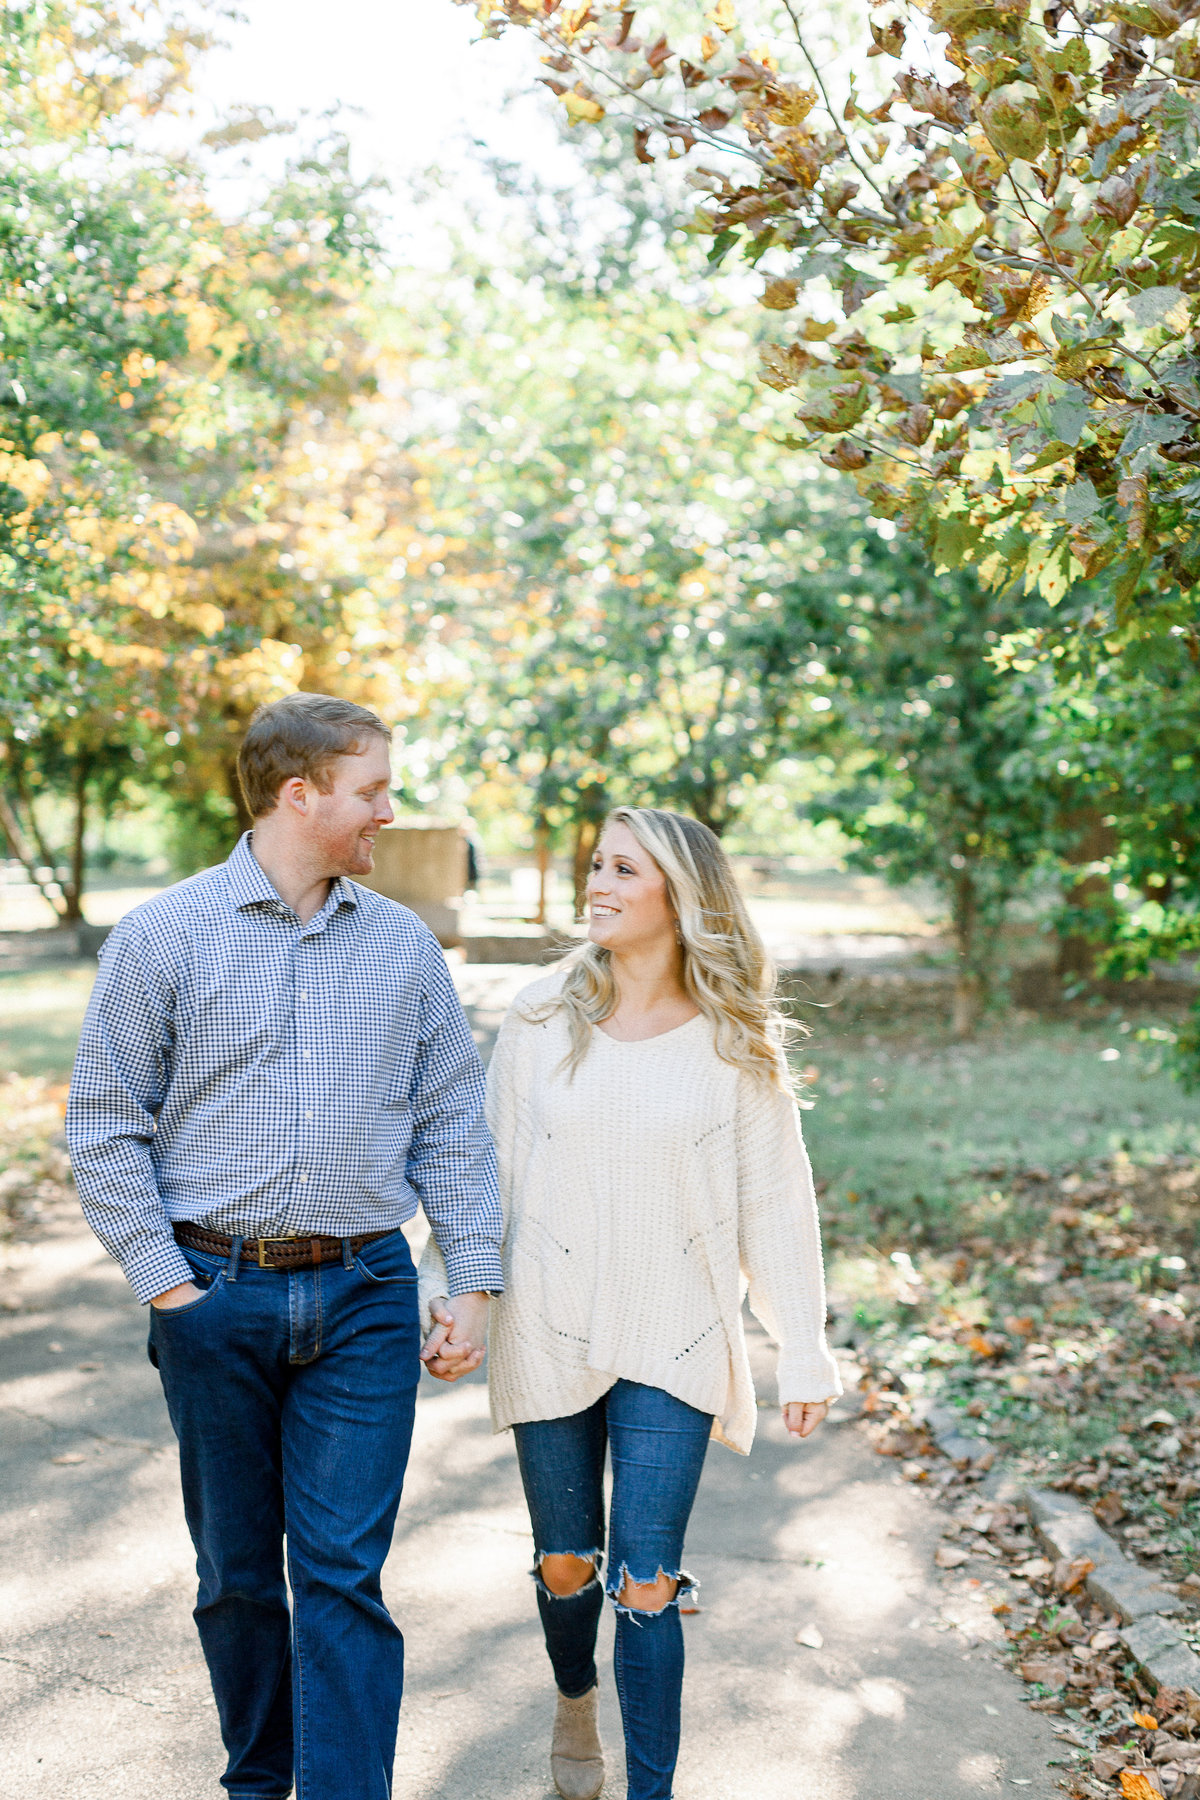 Lizzie Baker Photo _ Atlanta Engagement Photographer _ Atlanta Wedding Photographer _ Biltmore Wedding Photographer _ Foxhall Wedding Photographer _ Yew Dell Wedding44